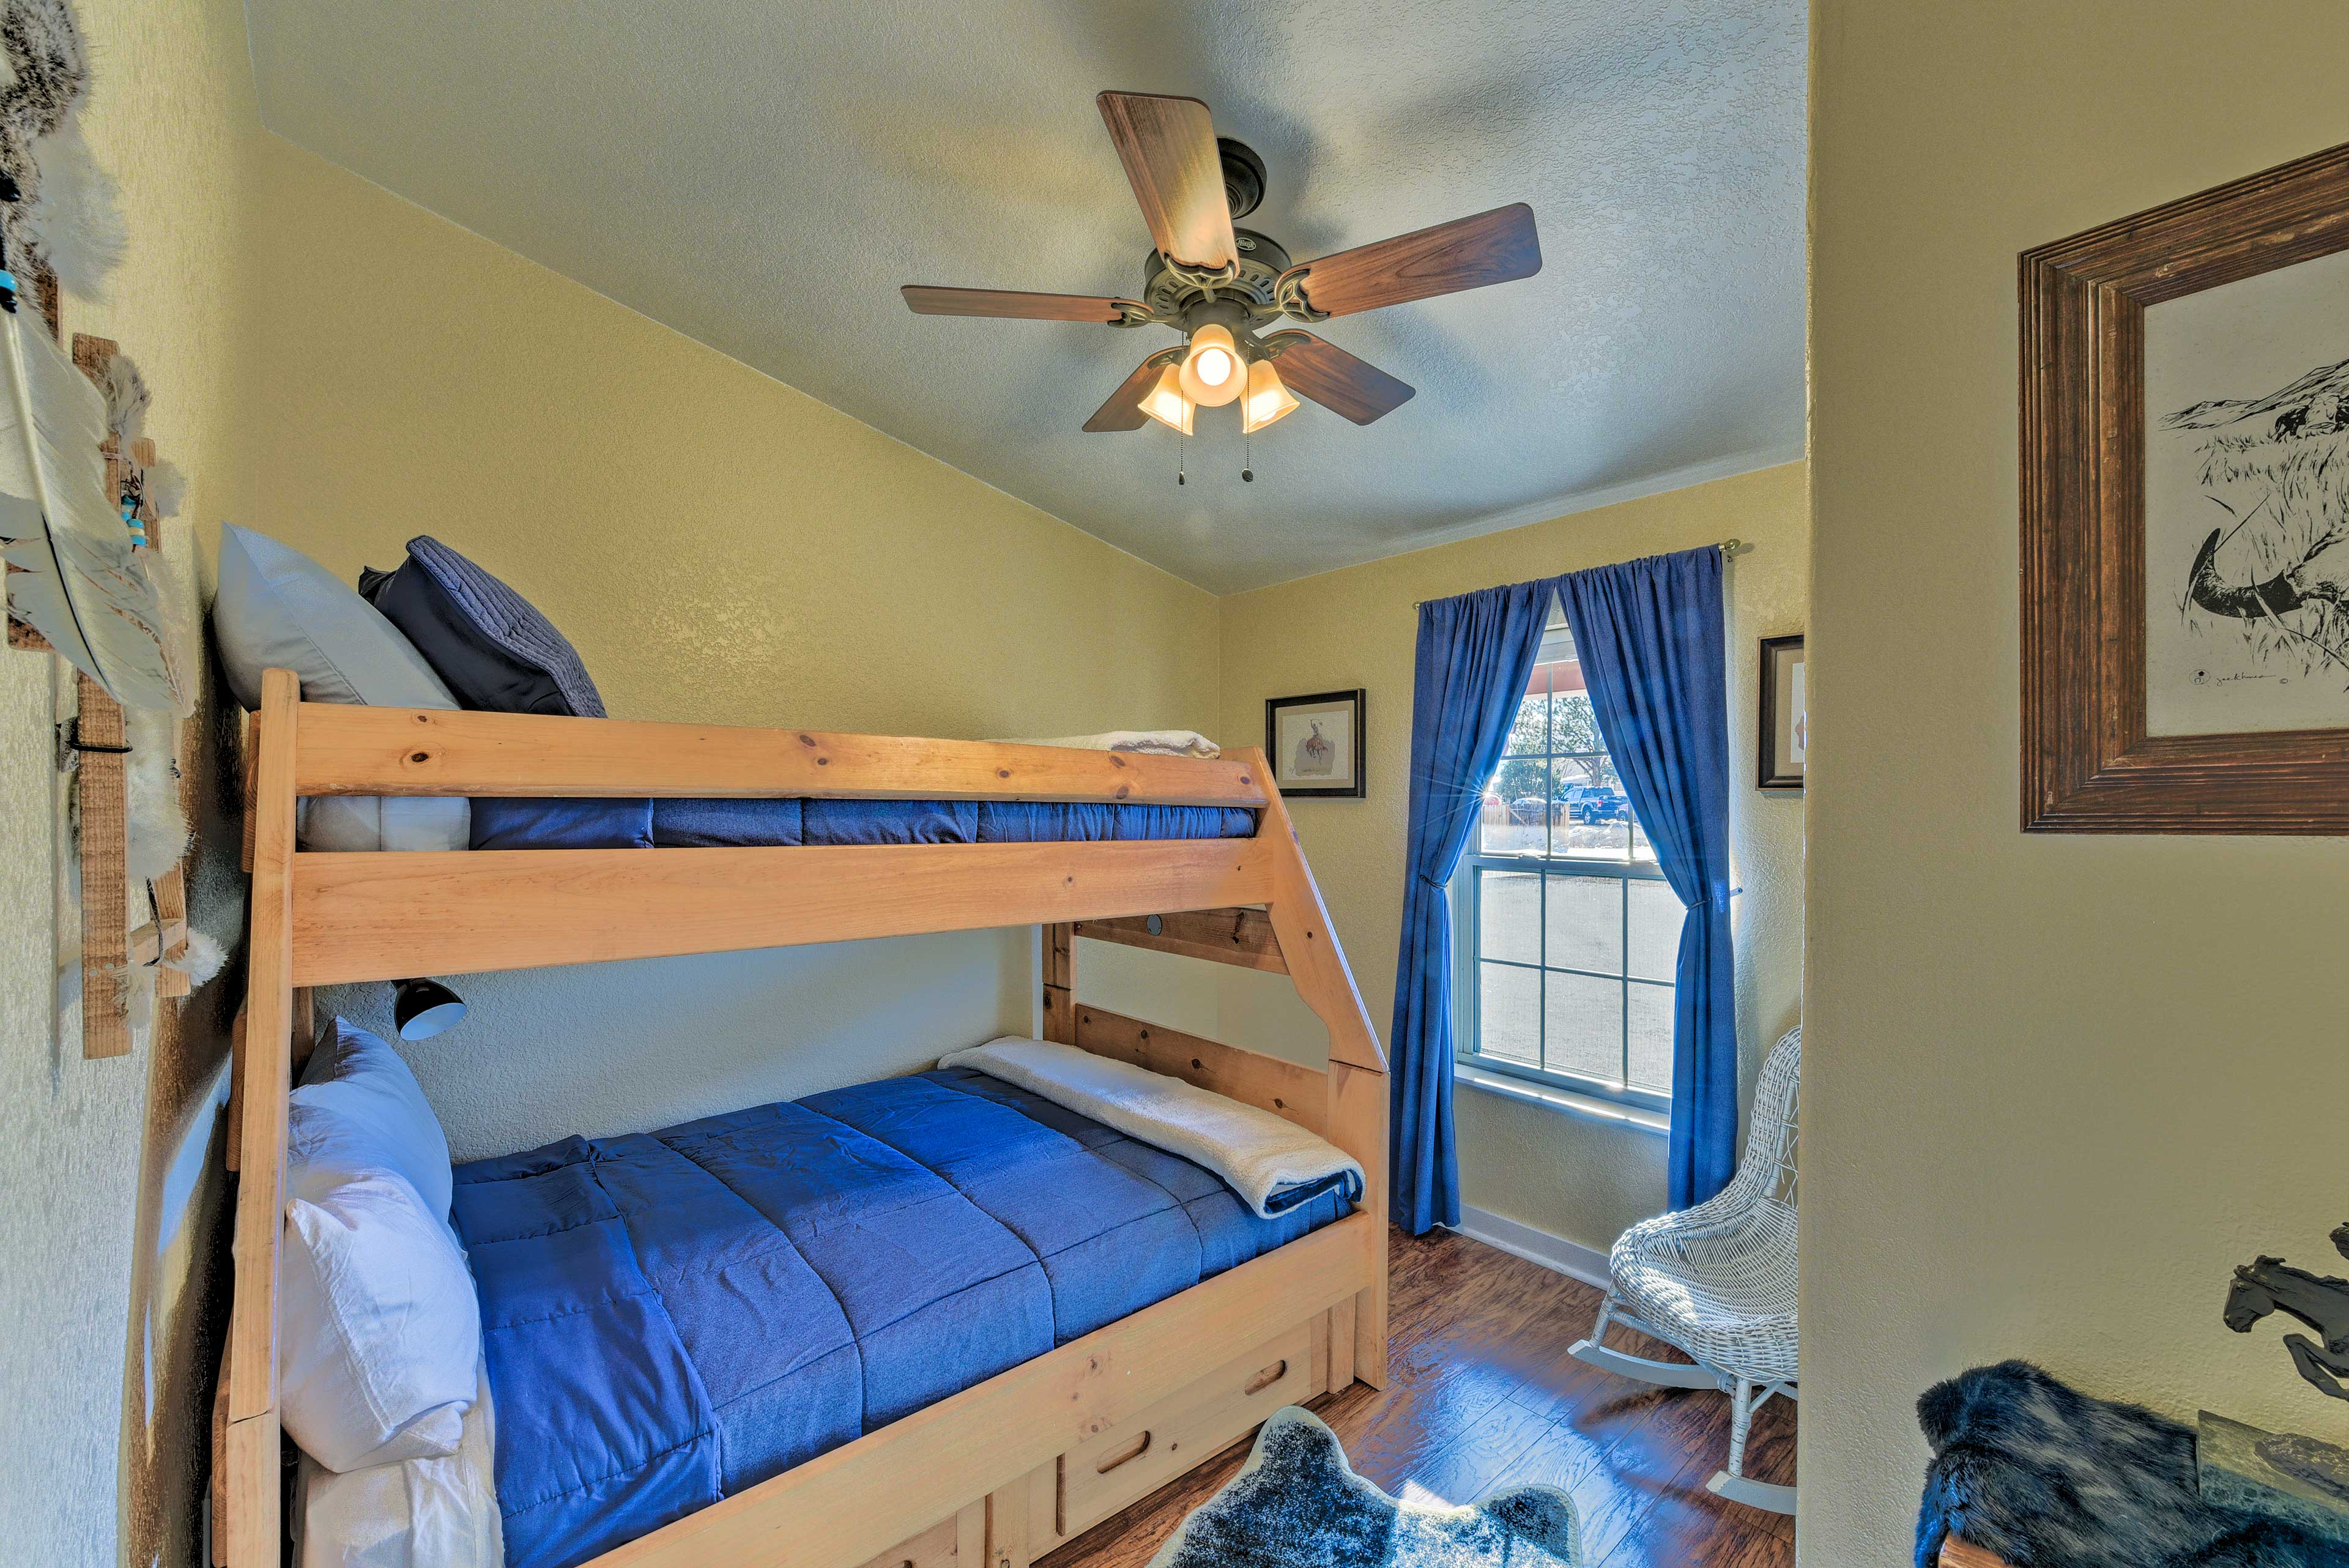 Up to 3 guests can become roomies in this lovely third bedroom.